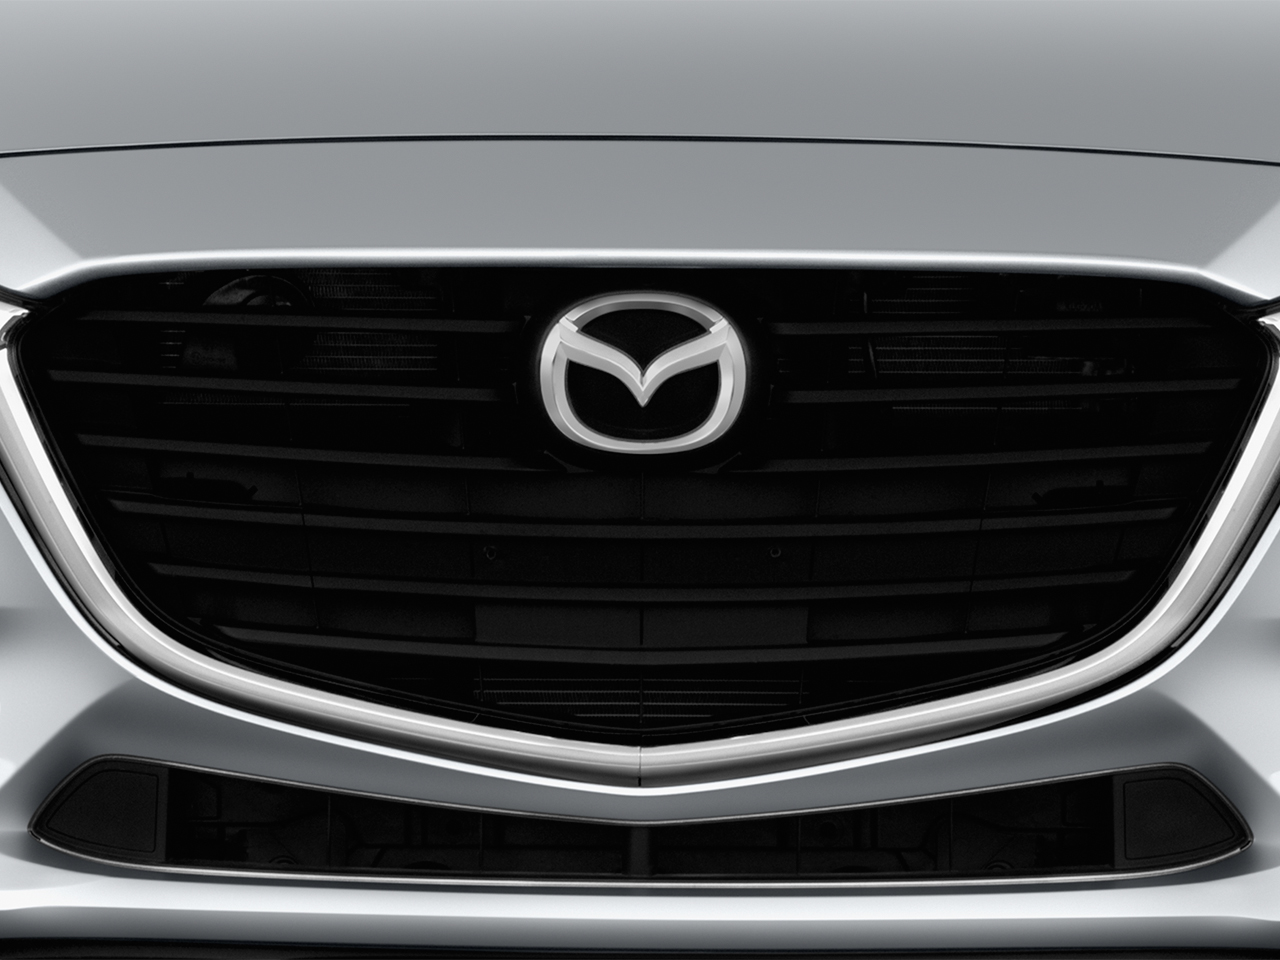 2020 Mazda Electric Car To Share Toyota Underpinnings